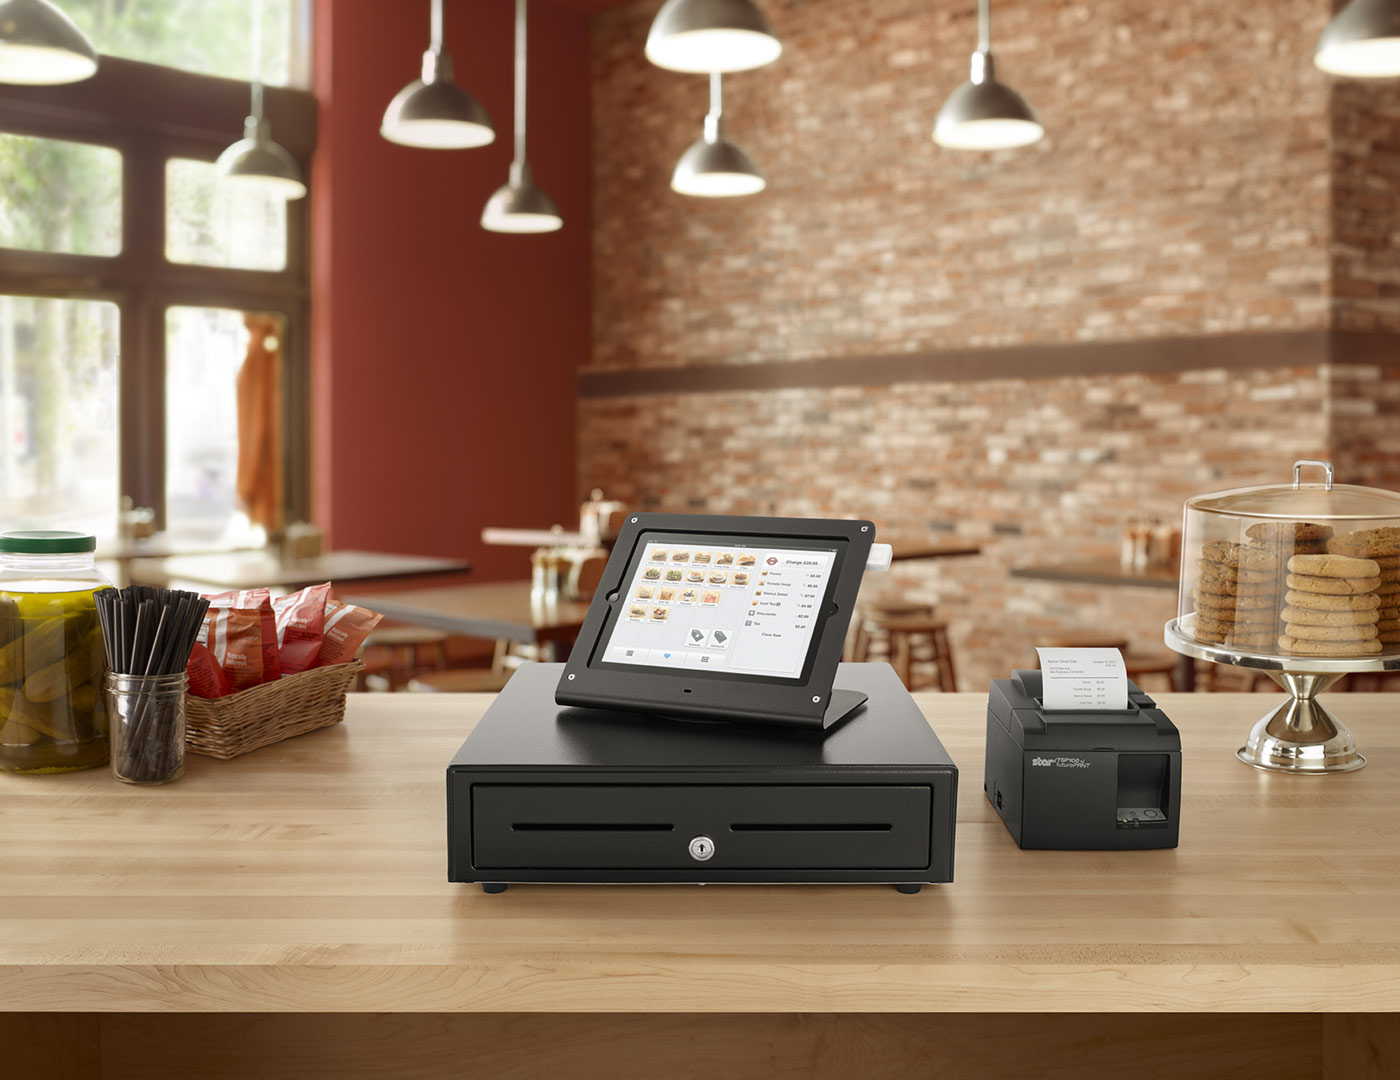 Square payments business in a box